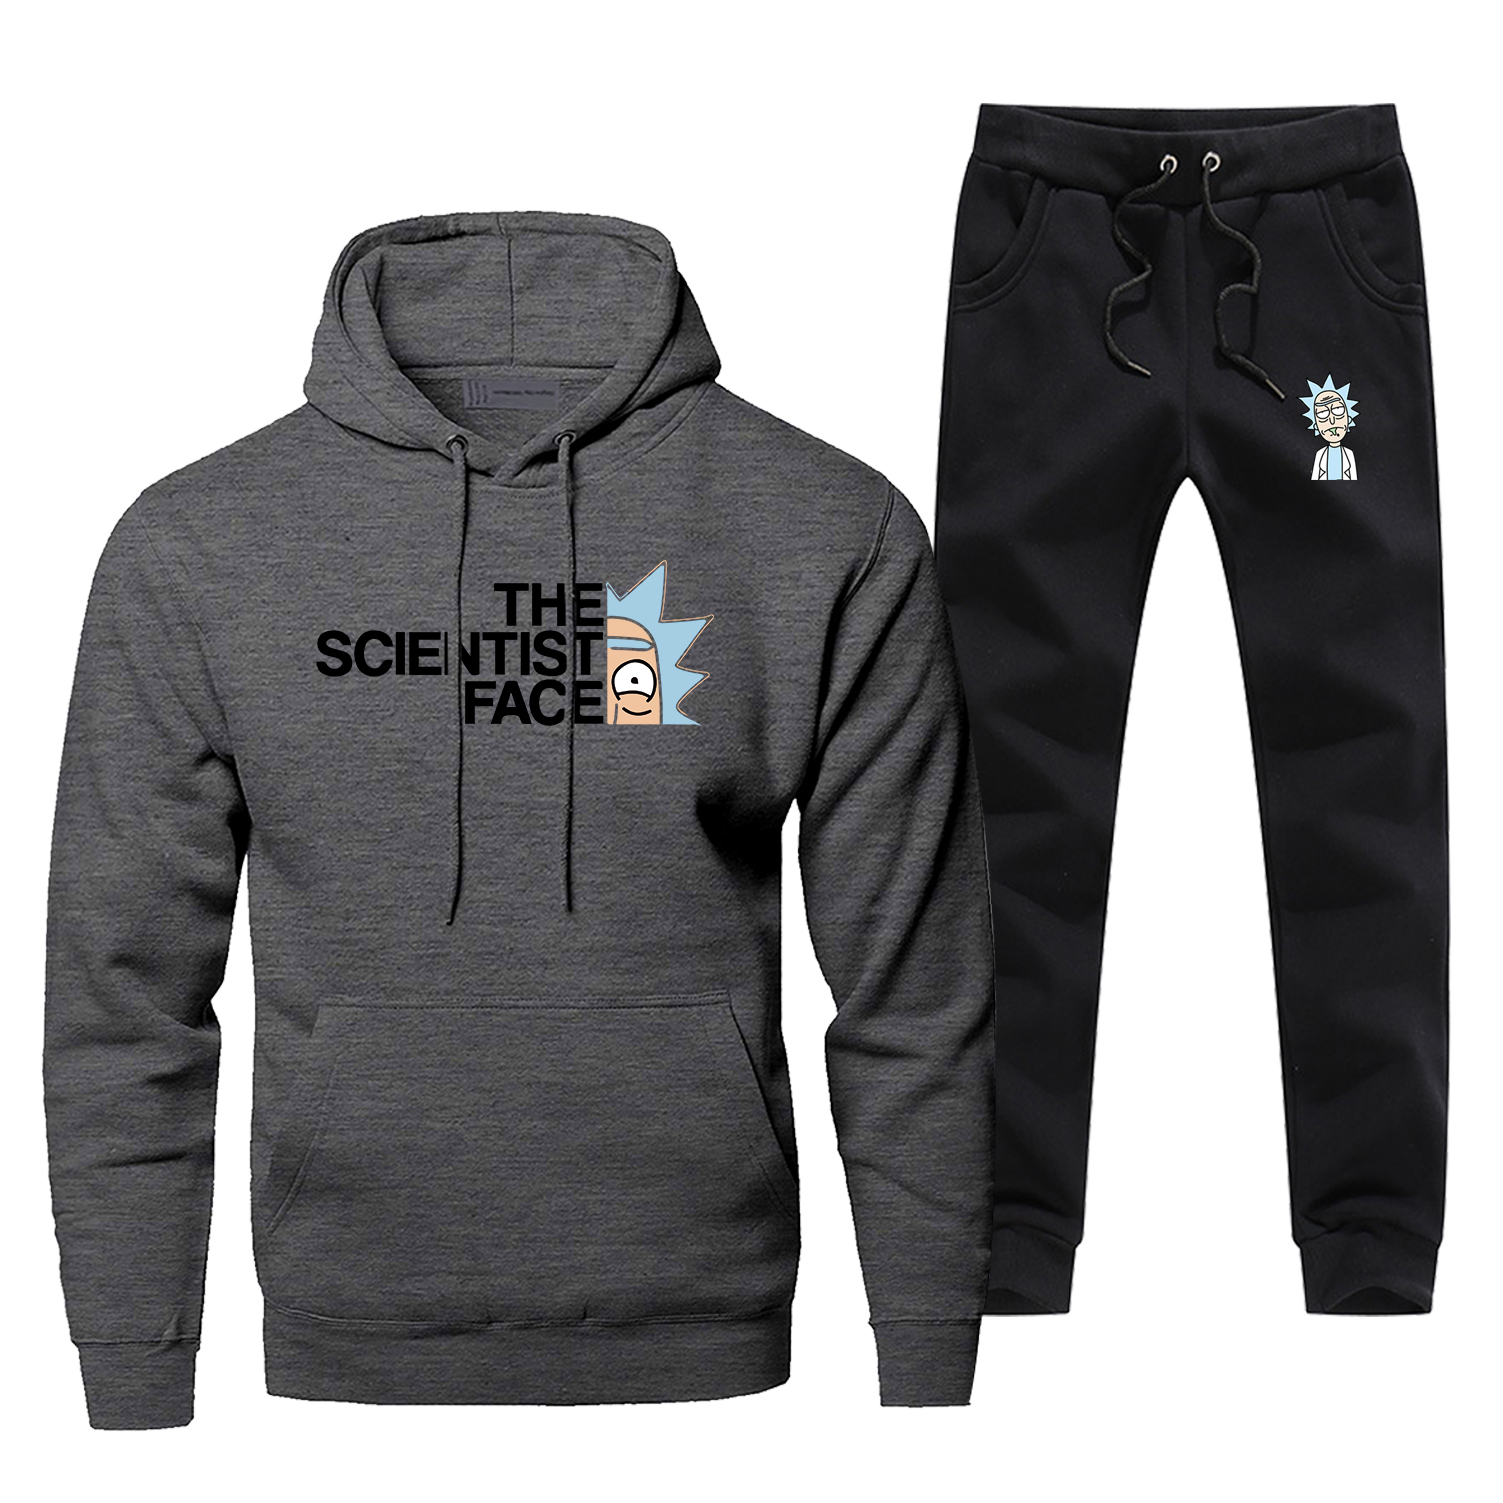 The Scientist Face Two Piece Set Rick And Morty Complete Man Tracksuit Fashion Hoodies Winter Streetwear Fleece Chandal Hombre